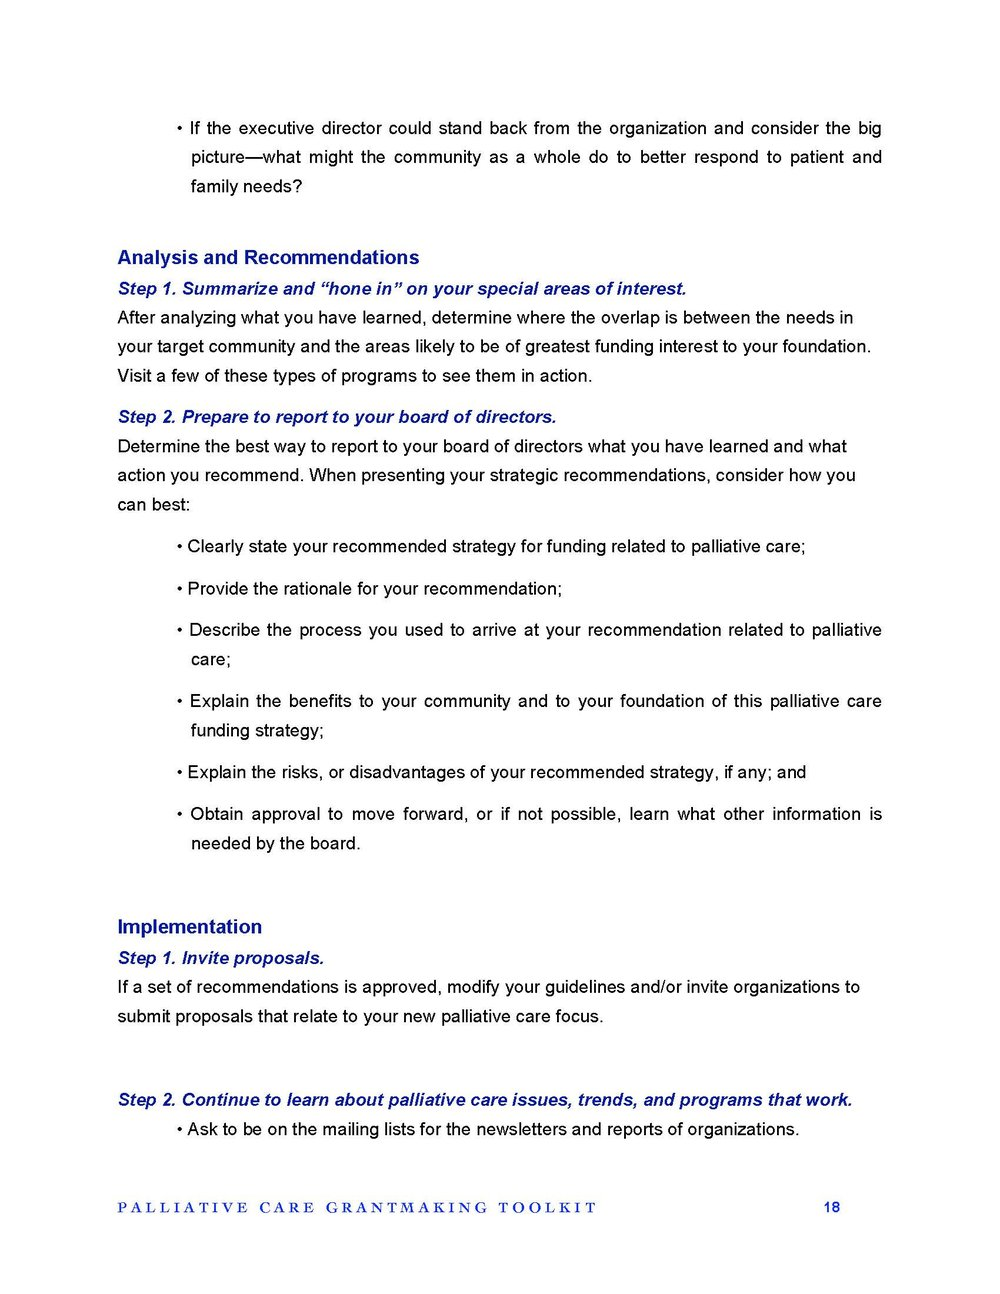 Palliative Care Grantmaking Toolkit_Page_19.jpg